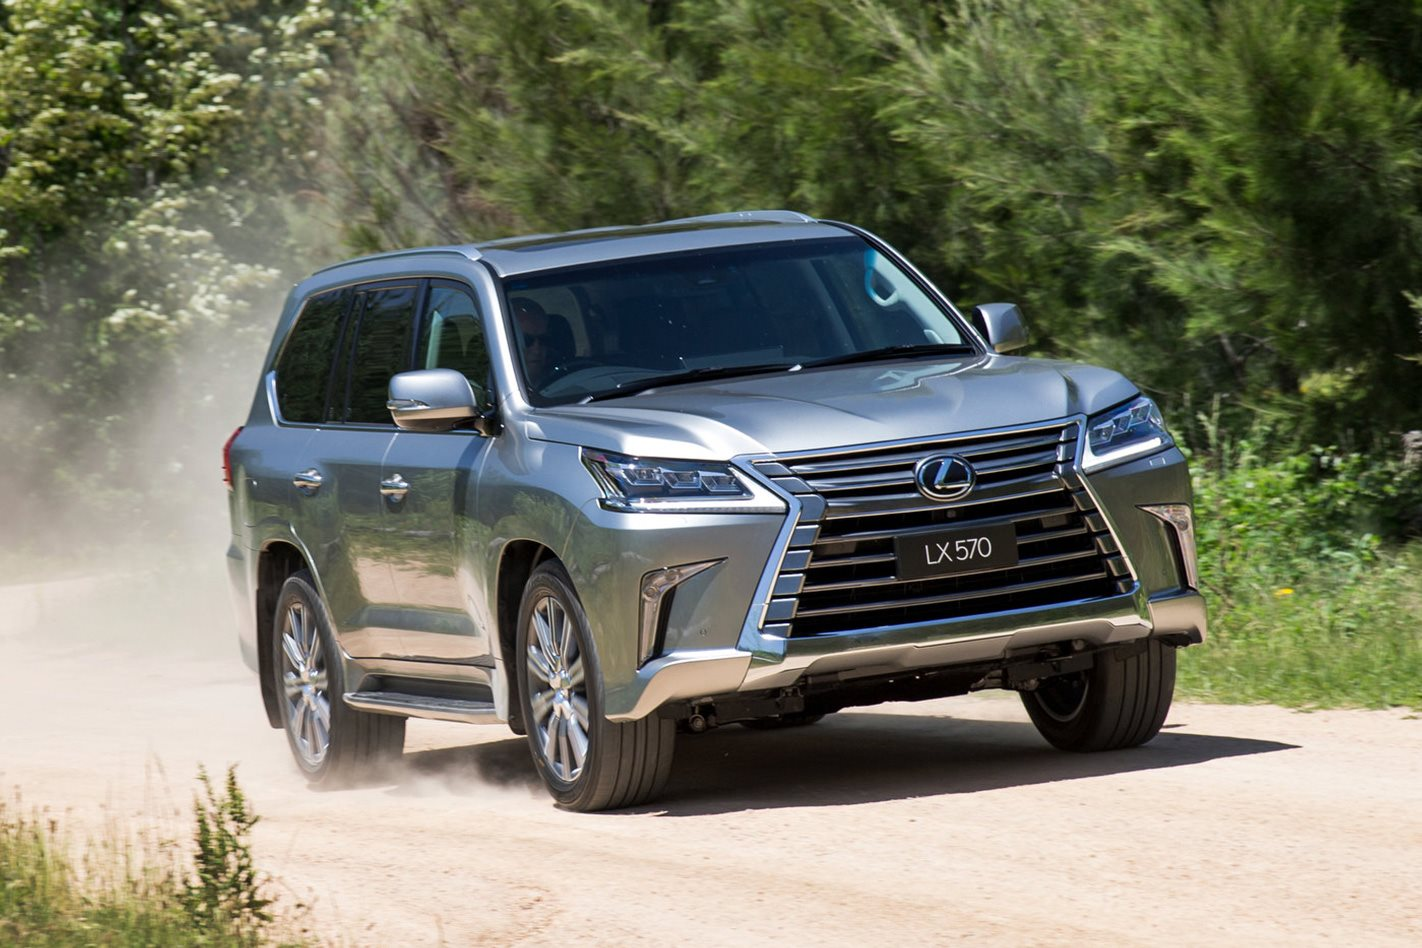 2016 lexus lx570 review wheels. Black Bedroom Furniture Sets. Home Design Ideas